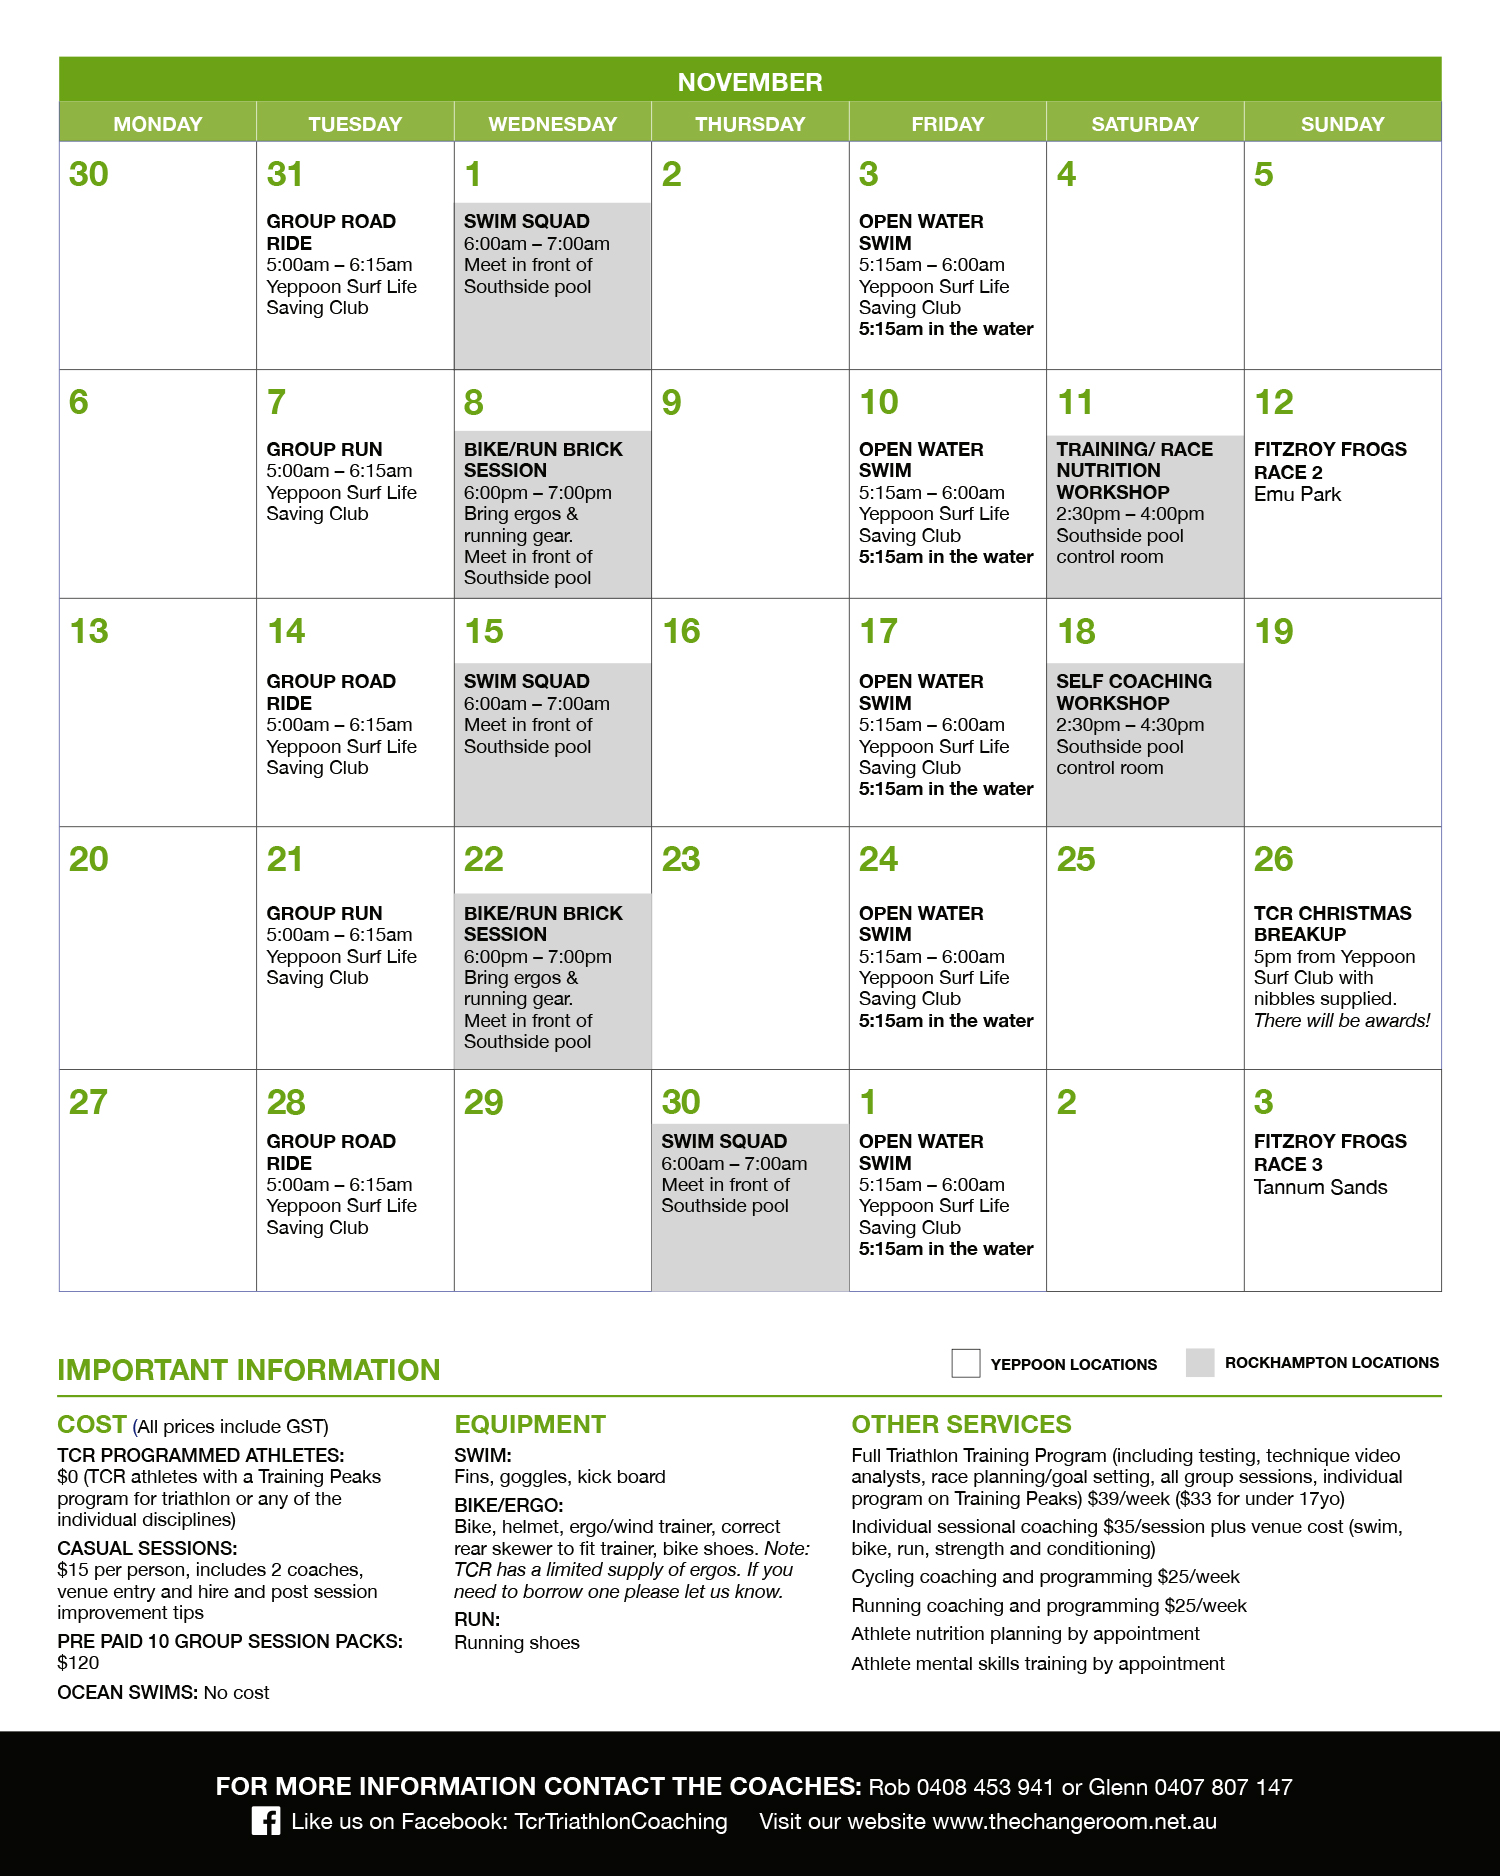 Download a pdf of the Yeppoon & Rockhampton November Training schedule here